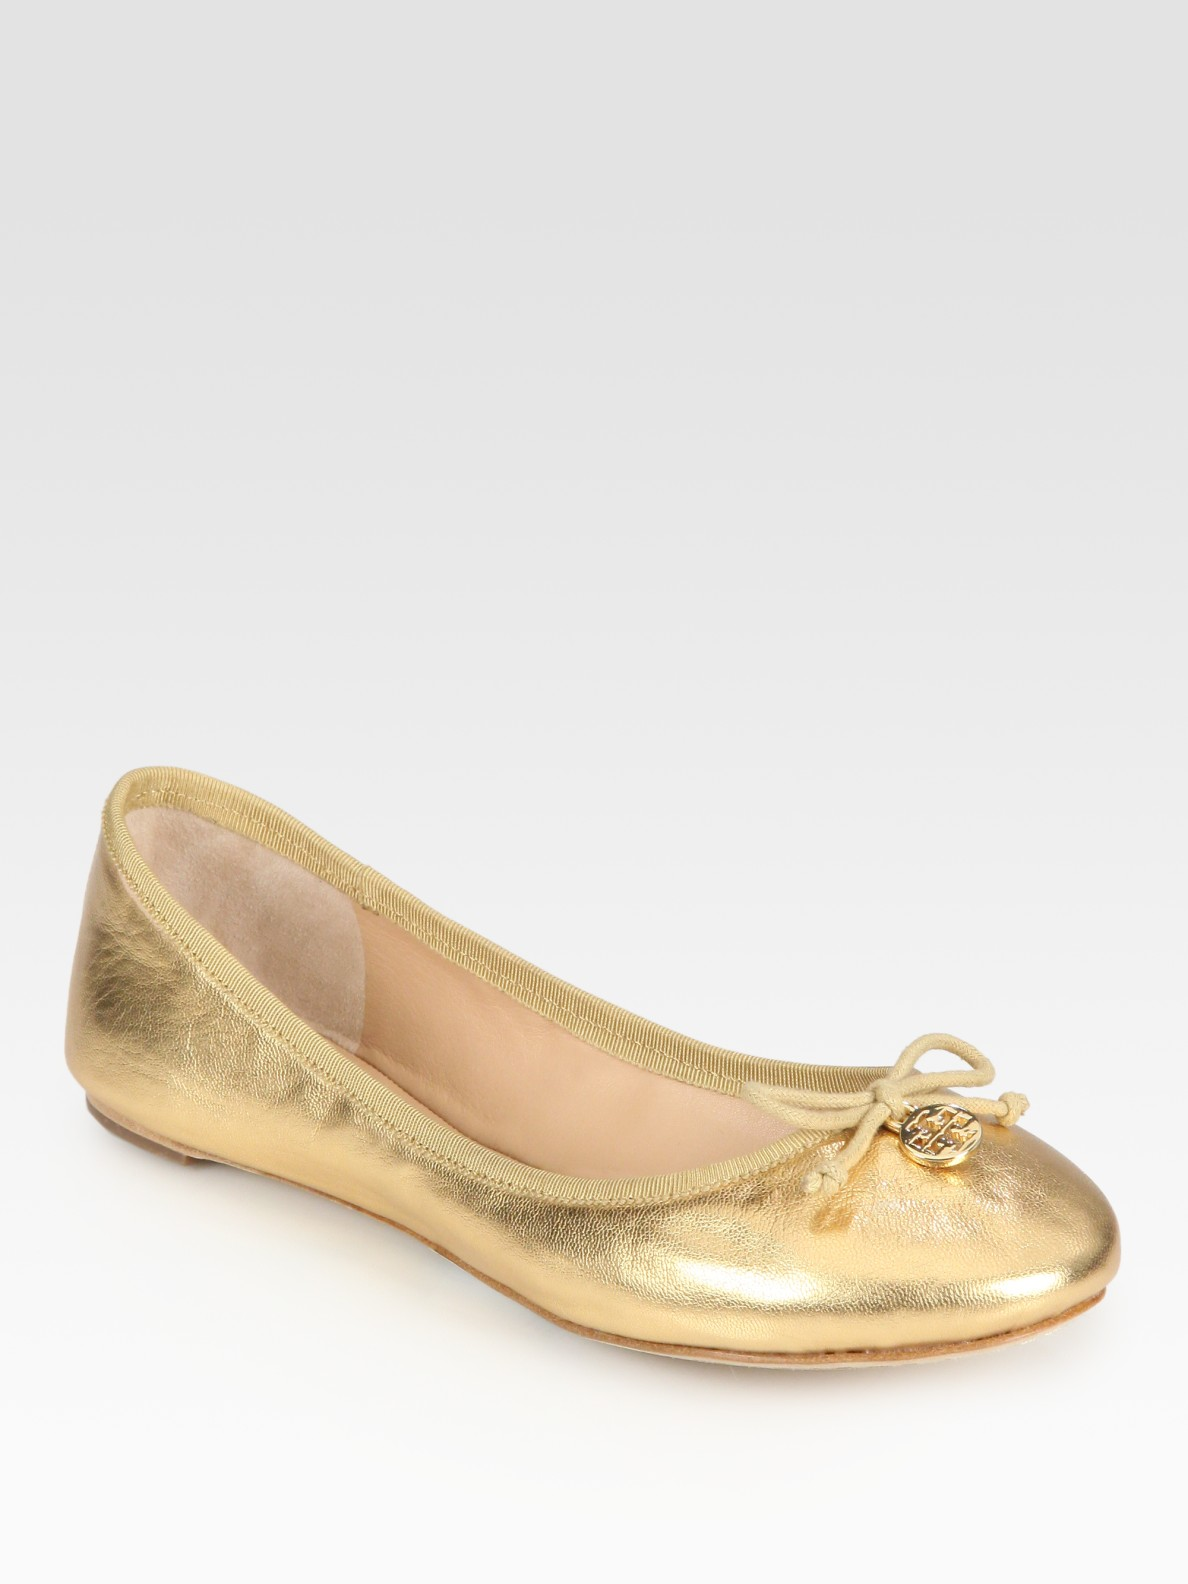 58ac88d788168c ... where can i buy lyst tory burch chelsea metallic leather bow logo  ballet flats in 8303c